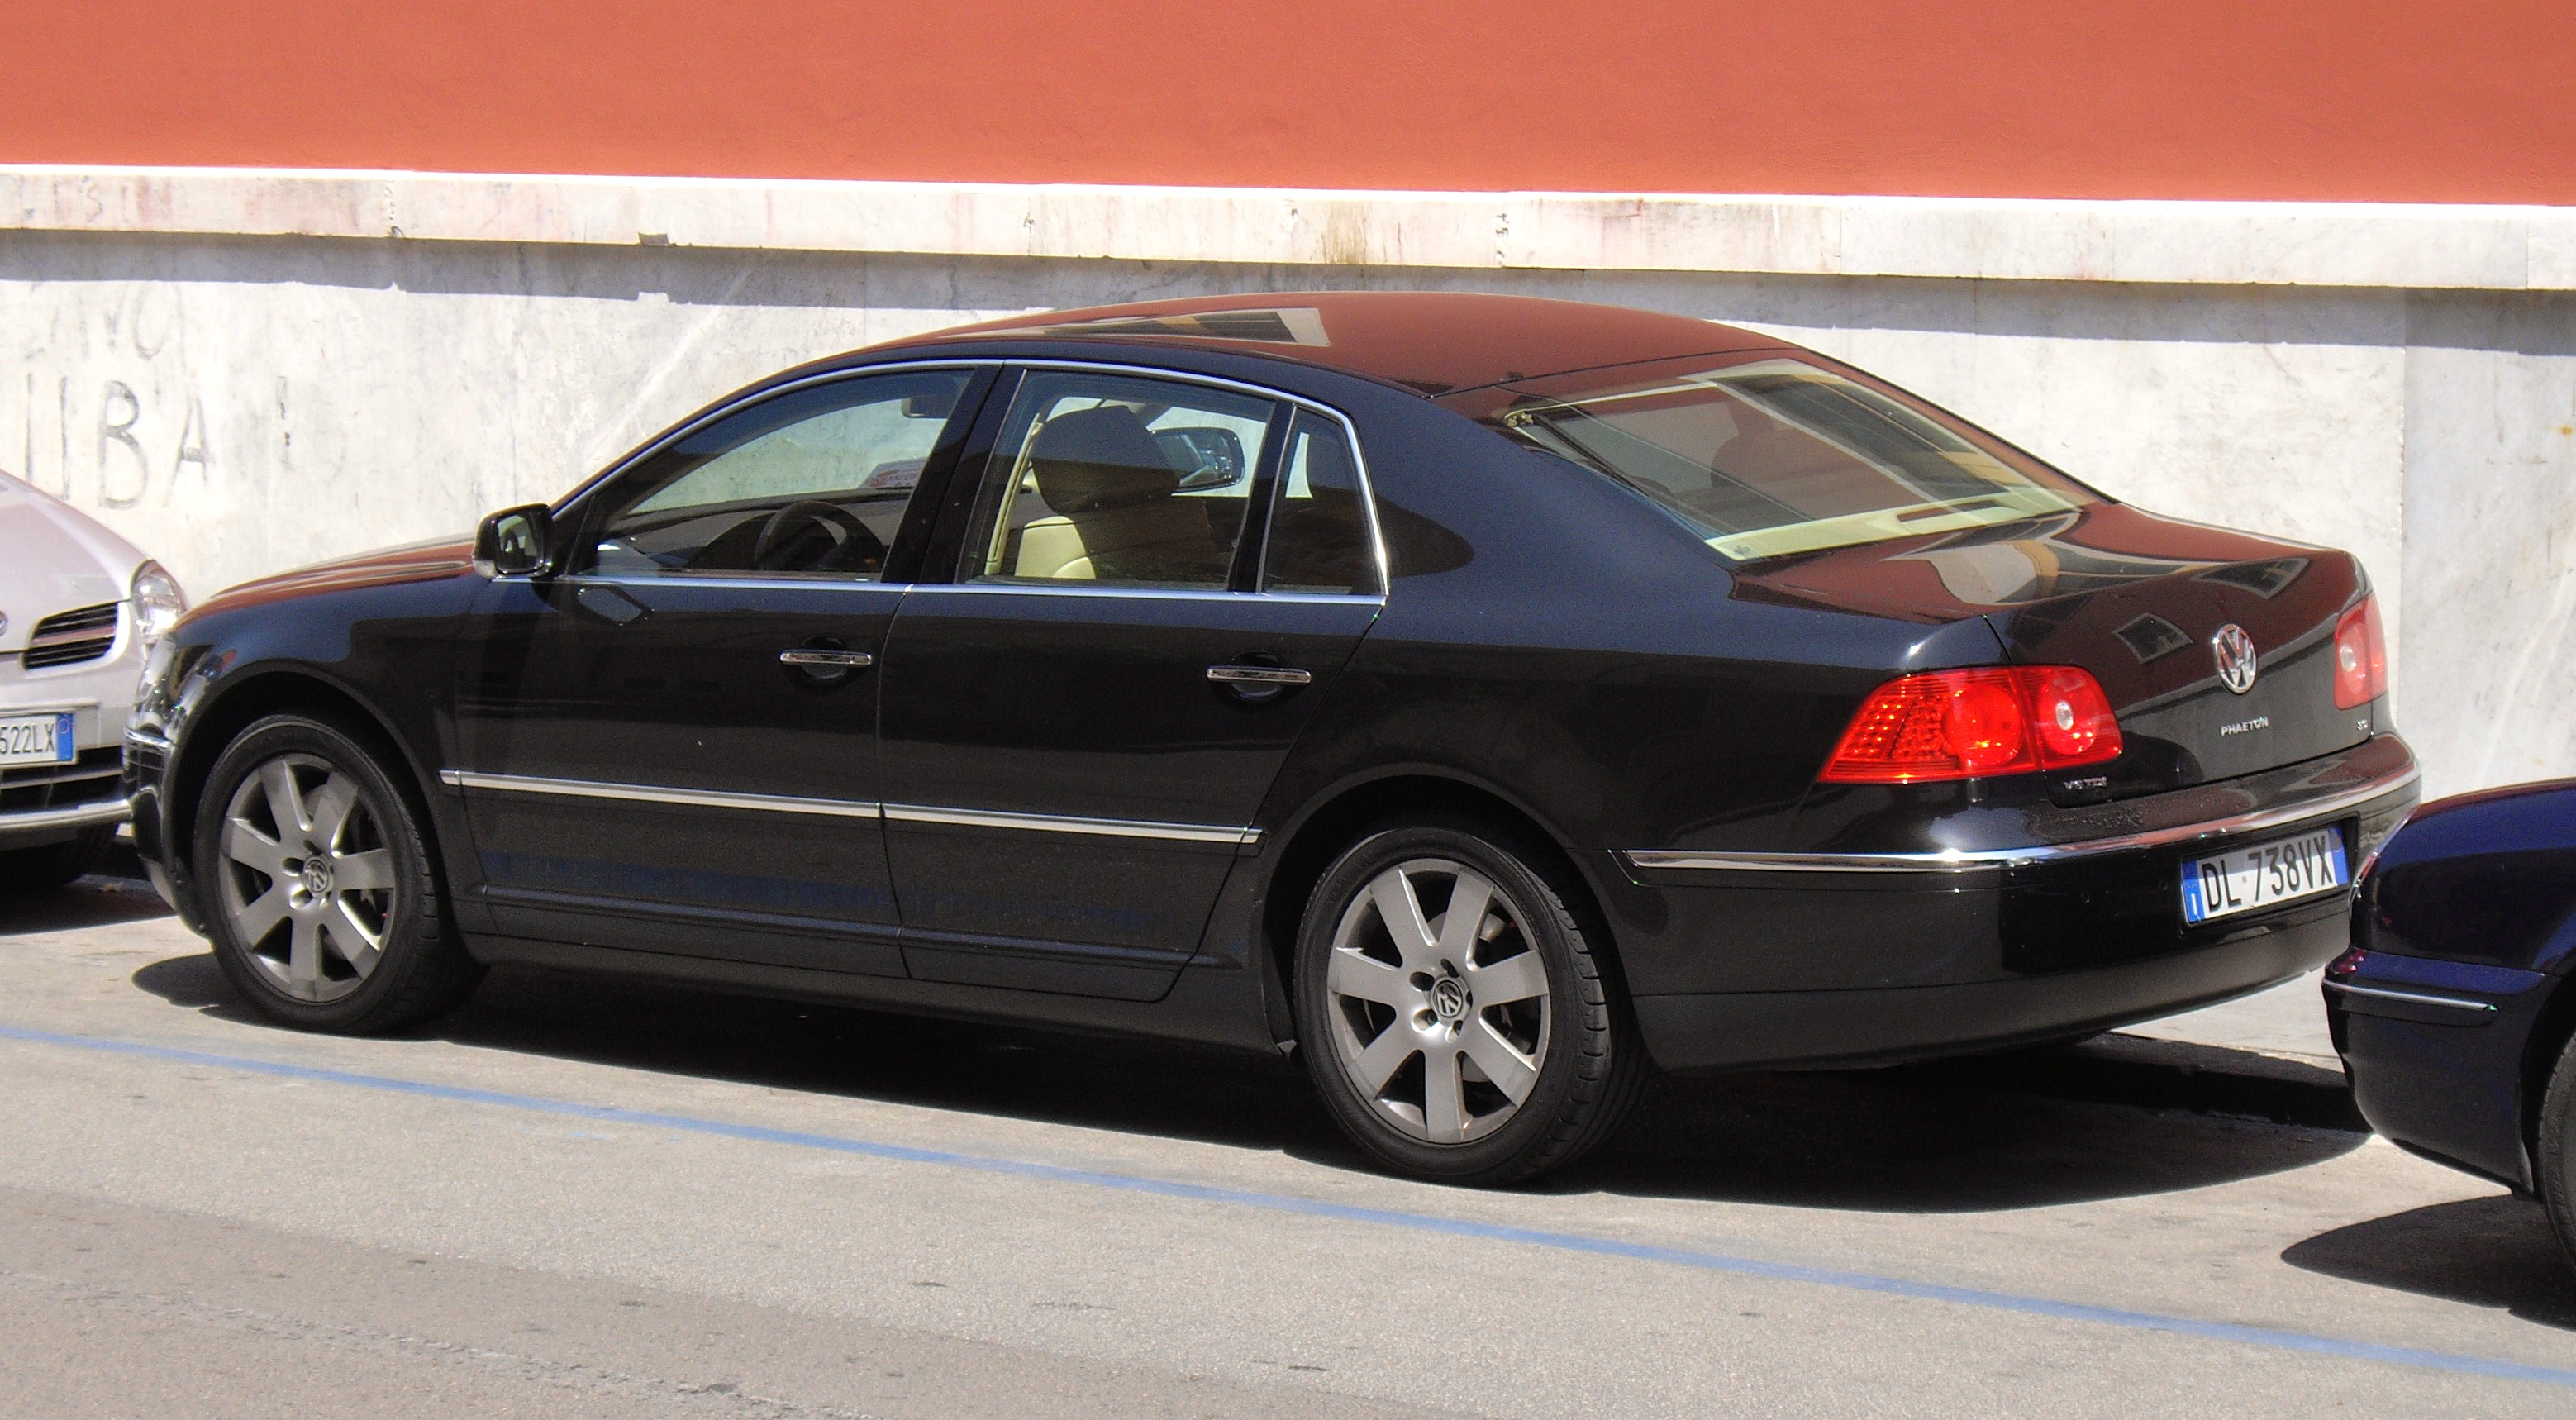 File:Volkswagen Phaeton rear.JPG - Wikimedia Commons